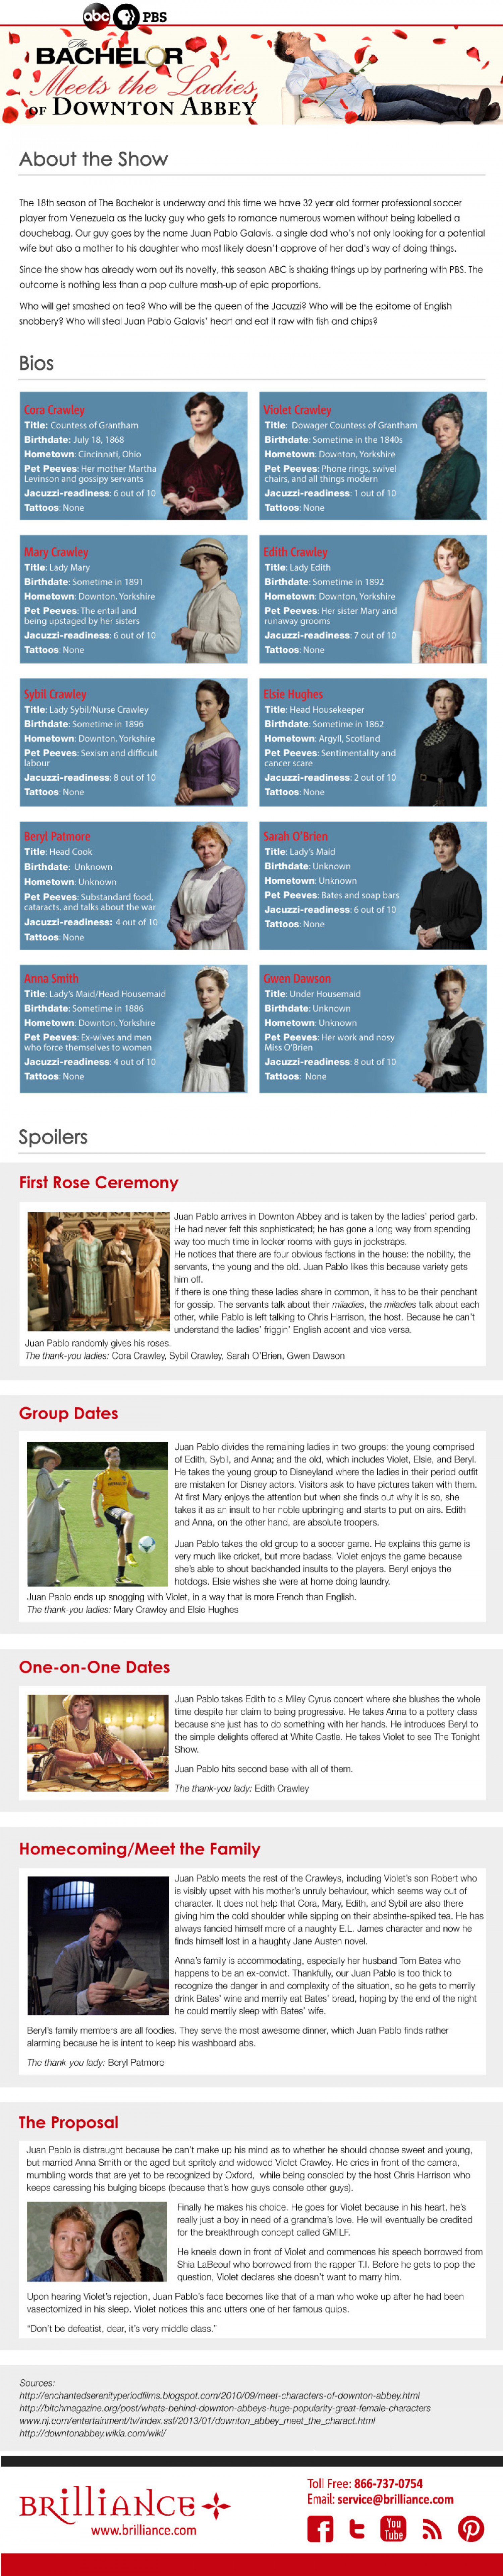 The Bachelor Meets The Ladies of Downton Abbey Infographic